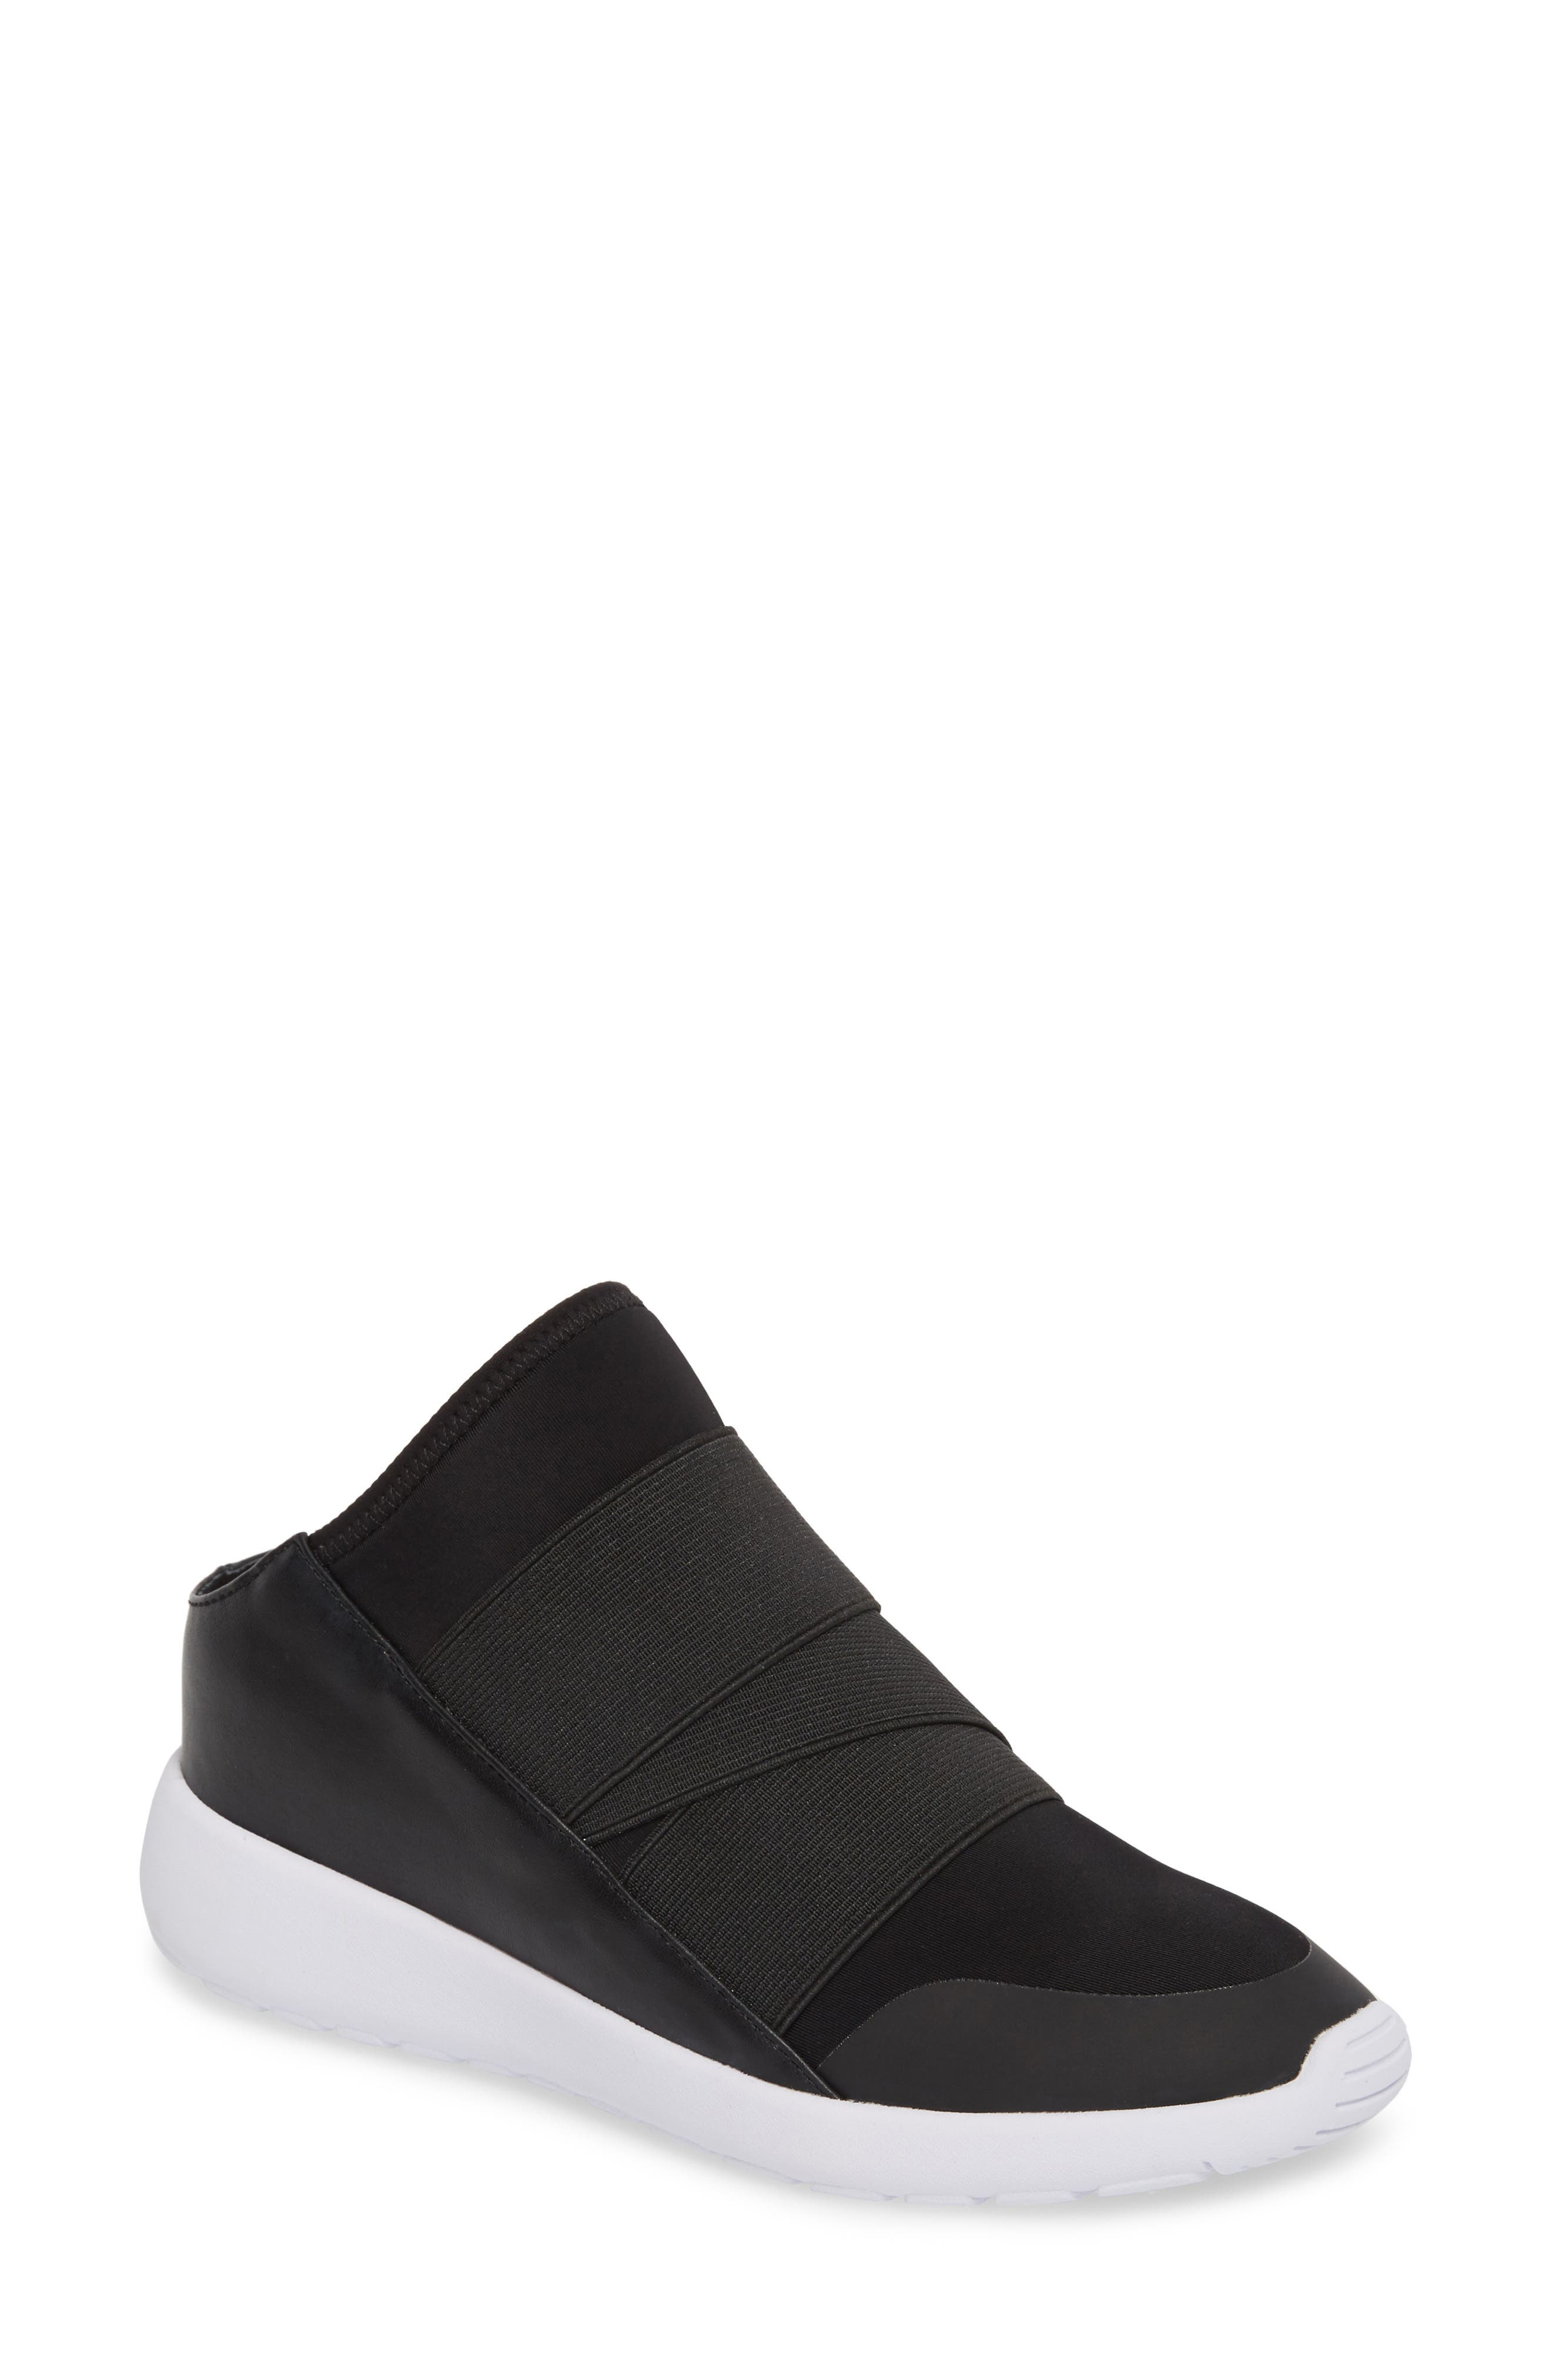 Vine Slip-On Sneaker,                         Main,                         color, 001